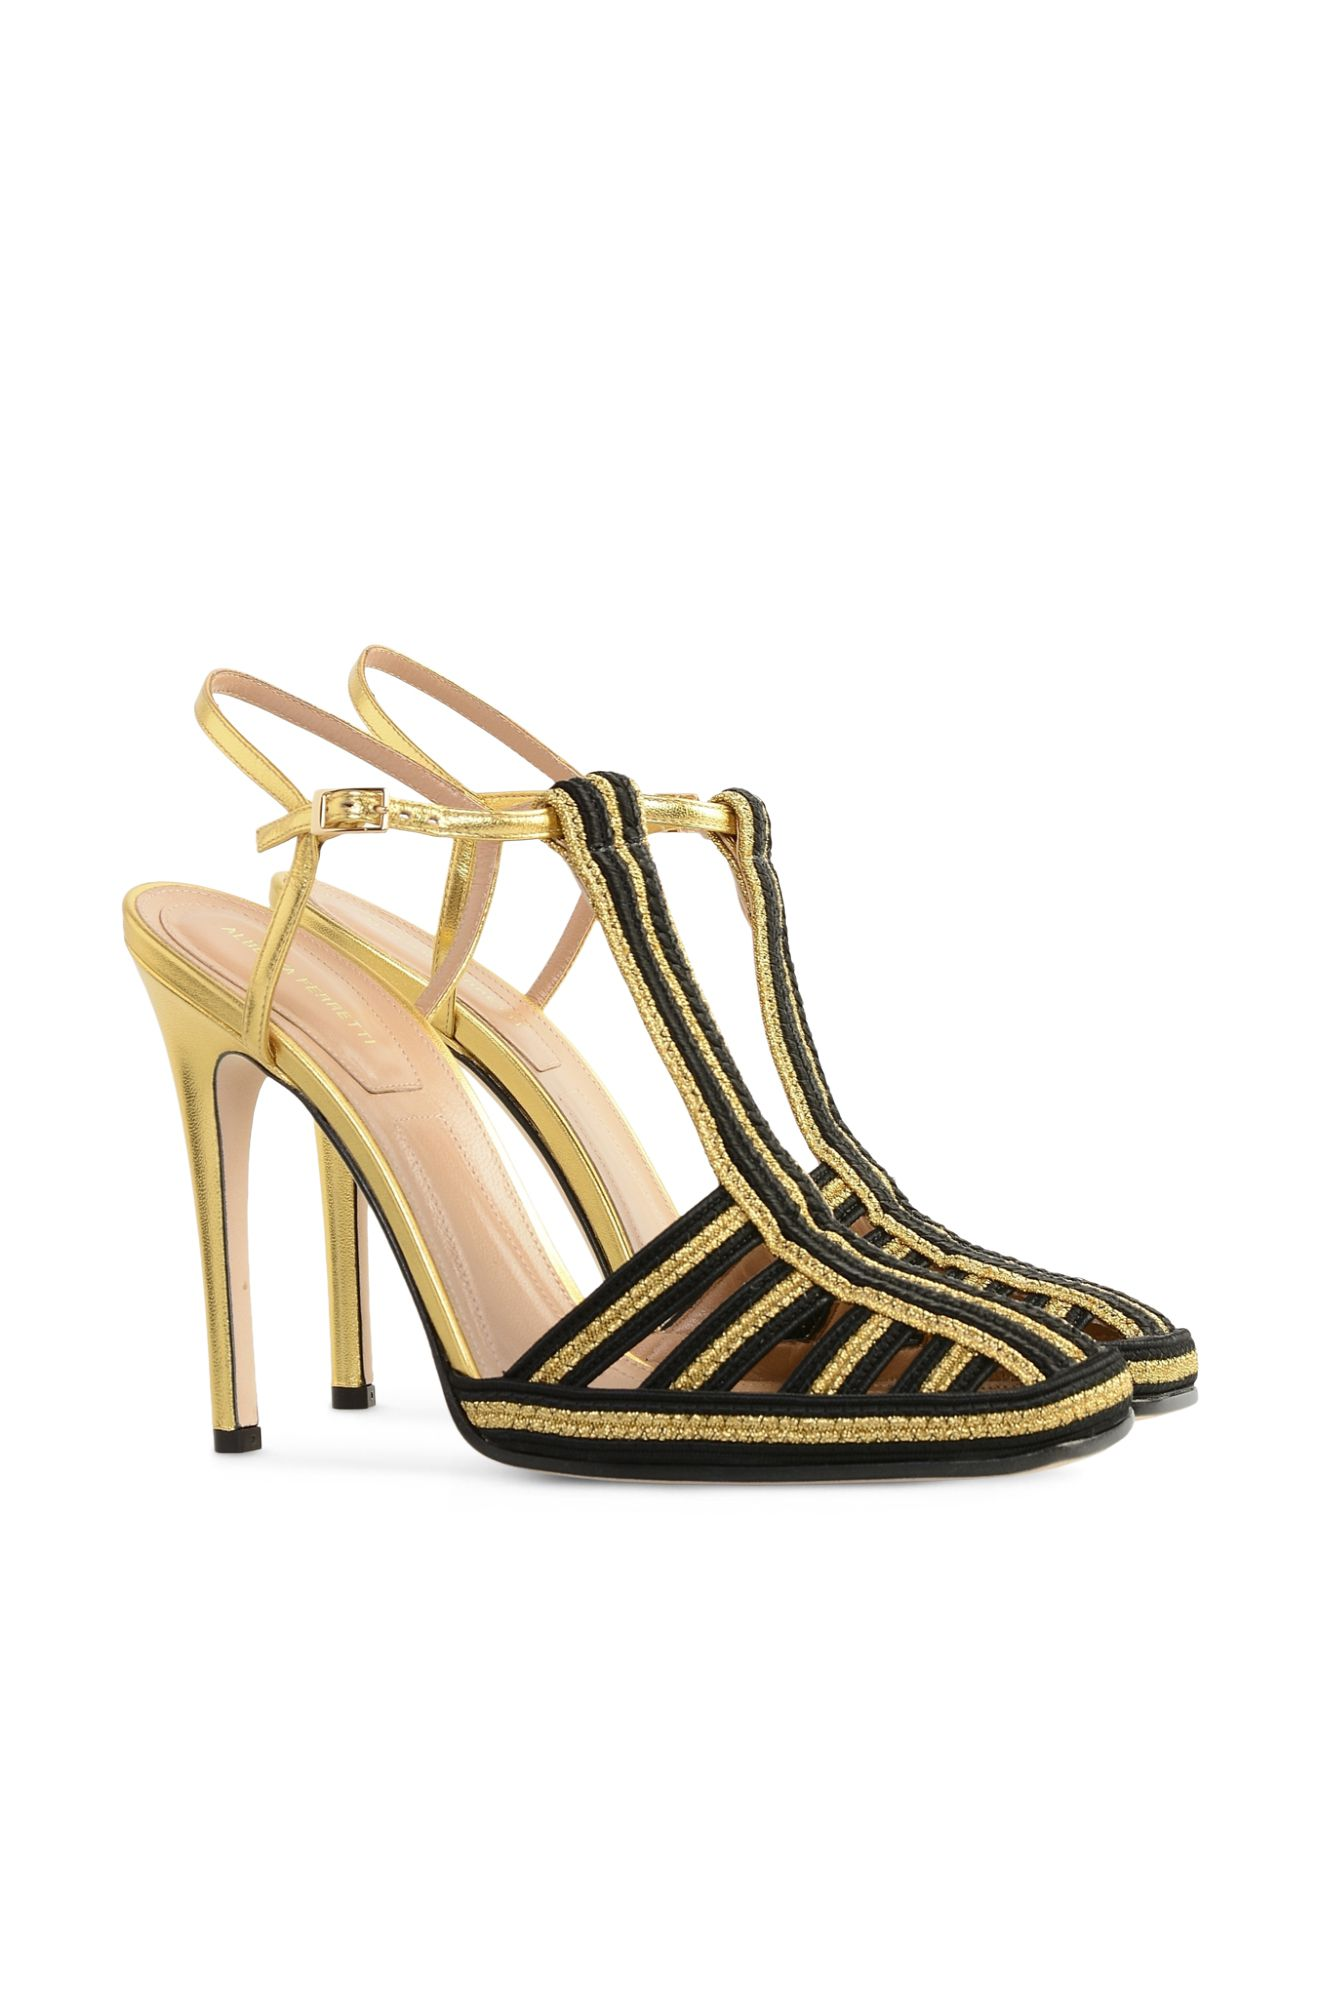 BLACK-GOLD SANDAL